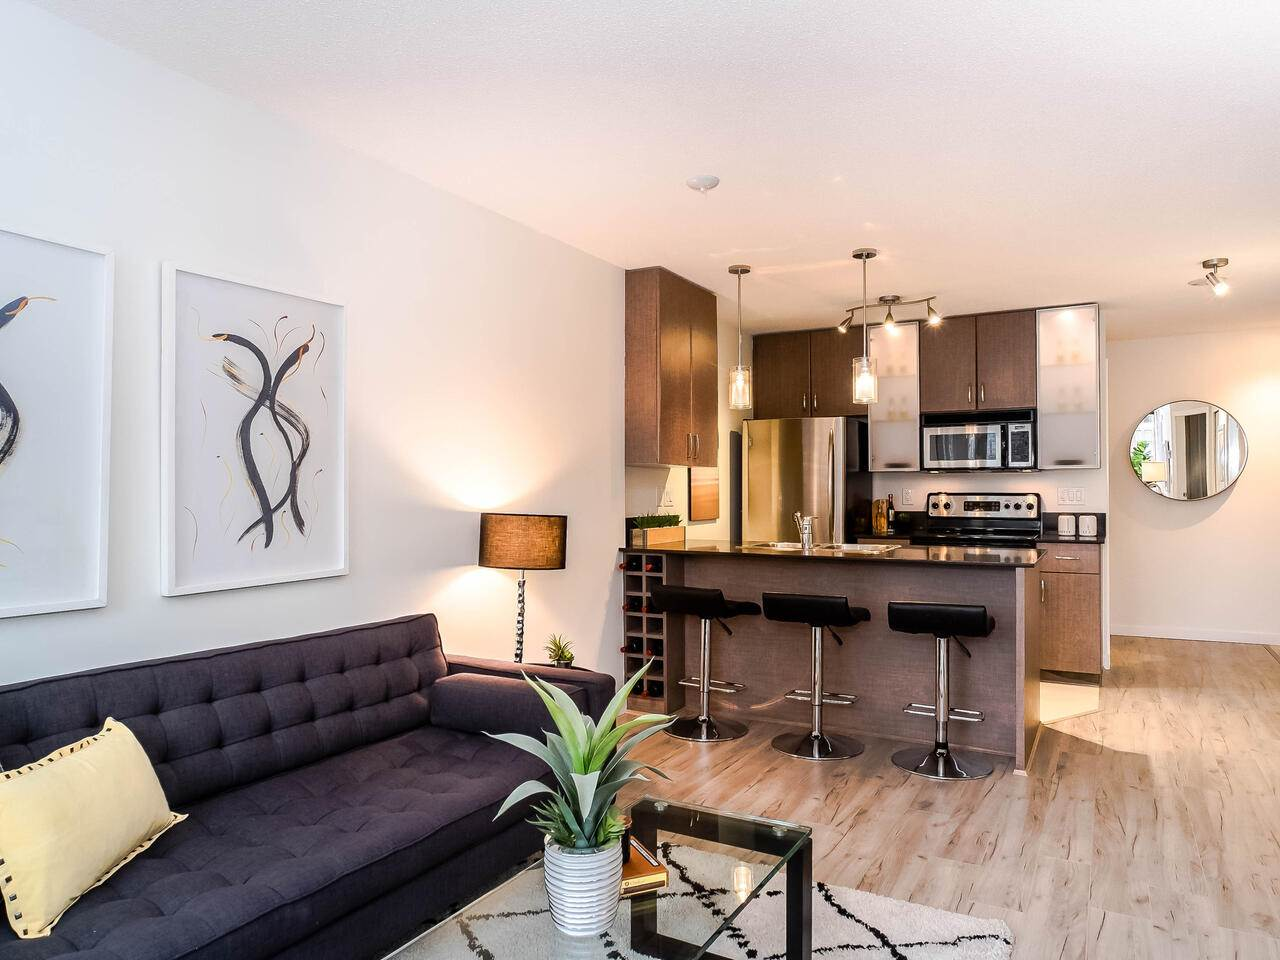 1810 909 MAINLAND STREET - Yaletown Apartment/Condo for sale, 1 Bedroom (R2518845) - #15